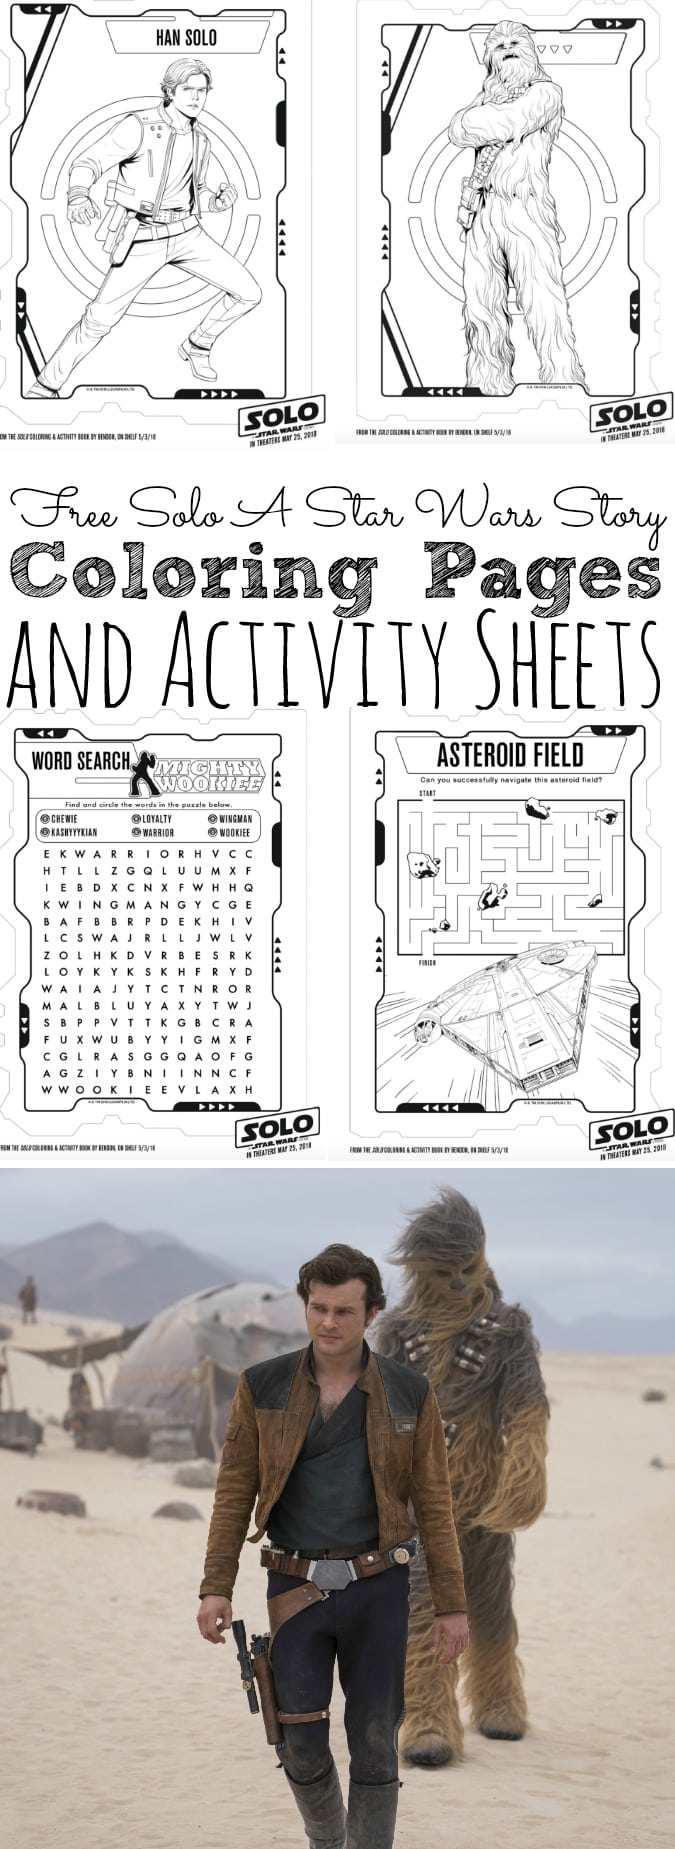 Free Solo A Star Wars Story Coloring Pages and Activity Sheets #HanSolo